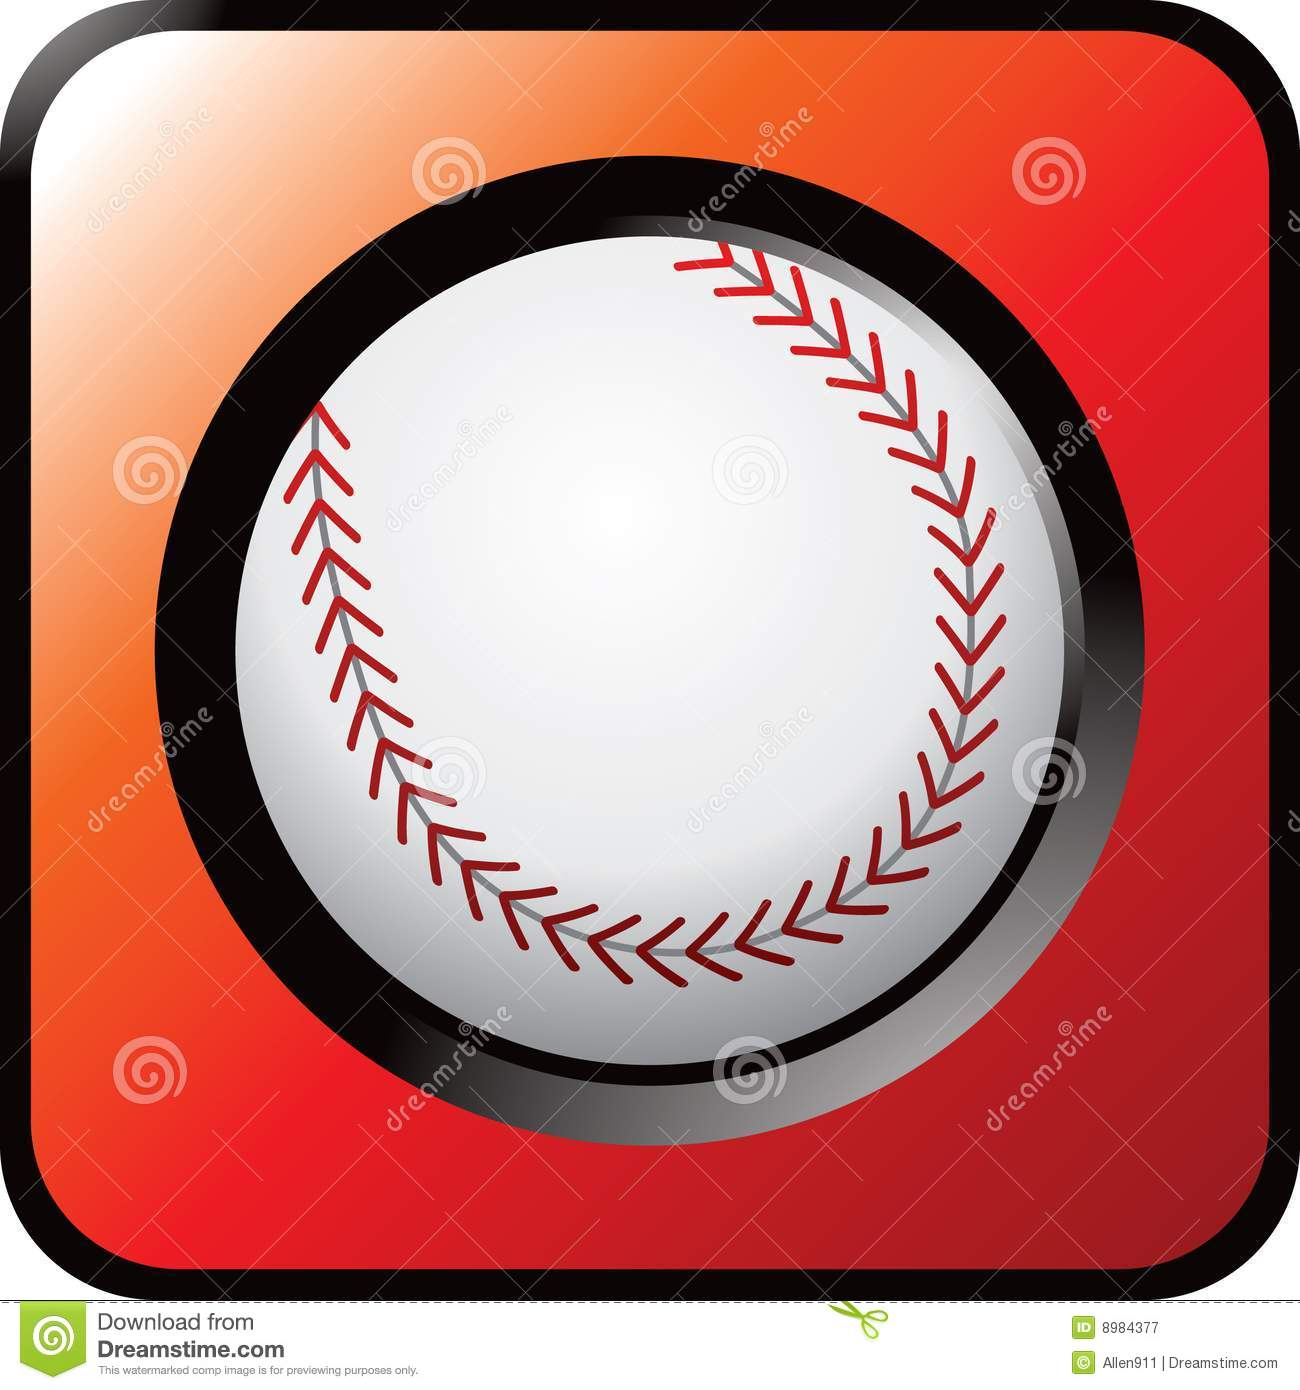 Baseball Icon Royalty Free Stock Photography  Image: 8984377